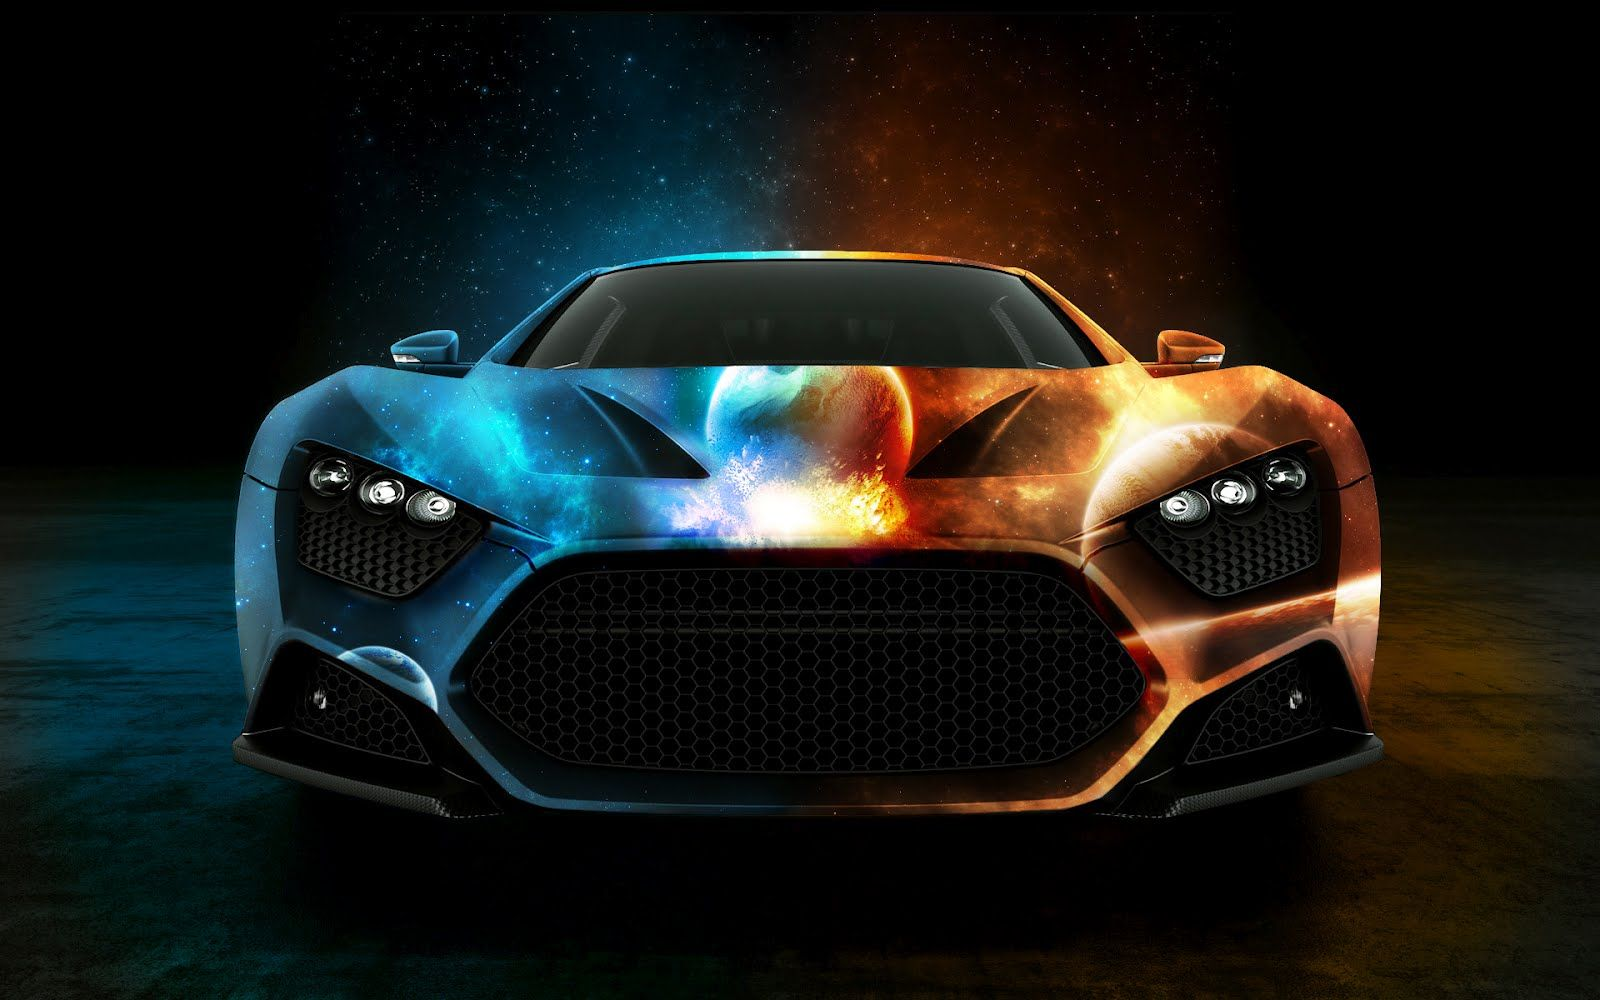 Awesome Car Background Wallpaper For Laptops Cool Car Pictures Car Pictures Car Backgrounds